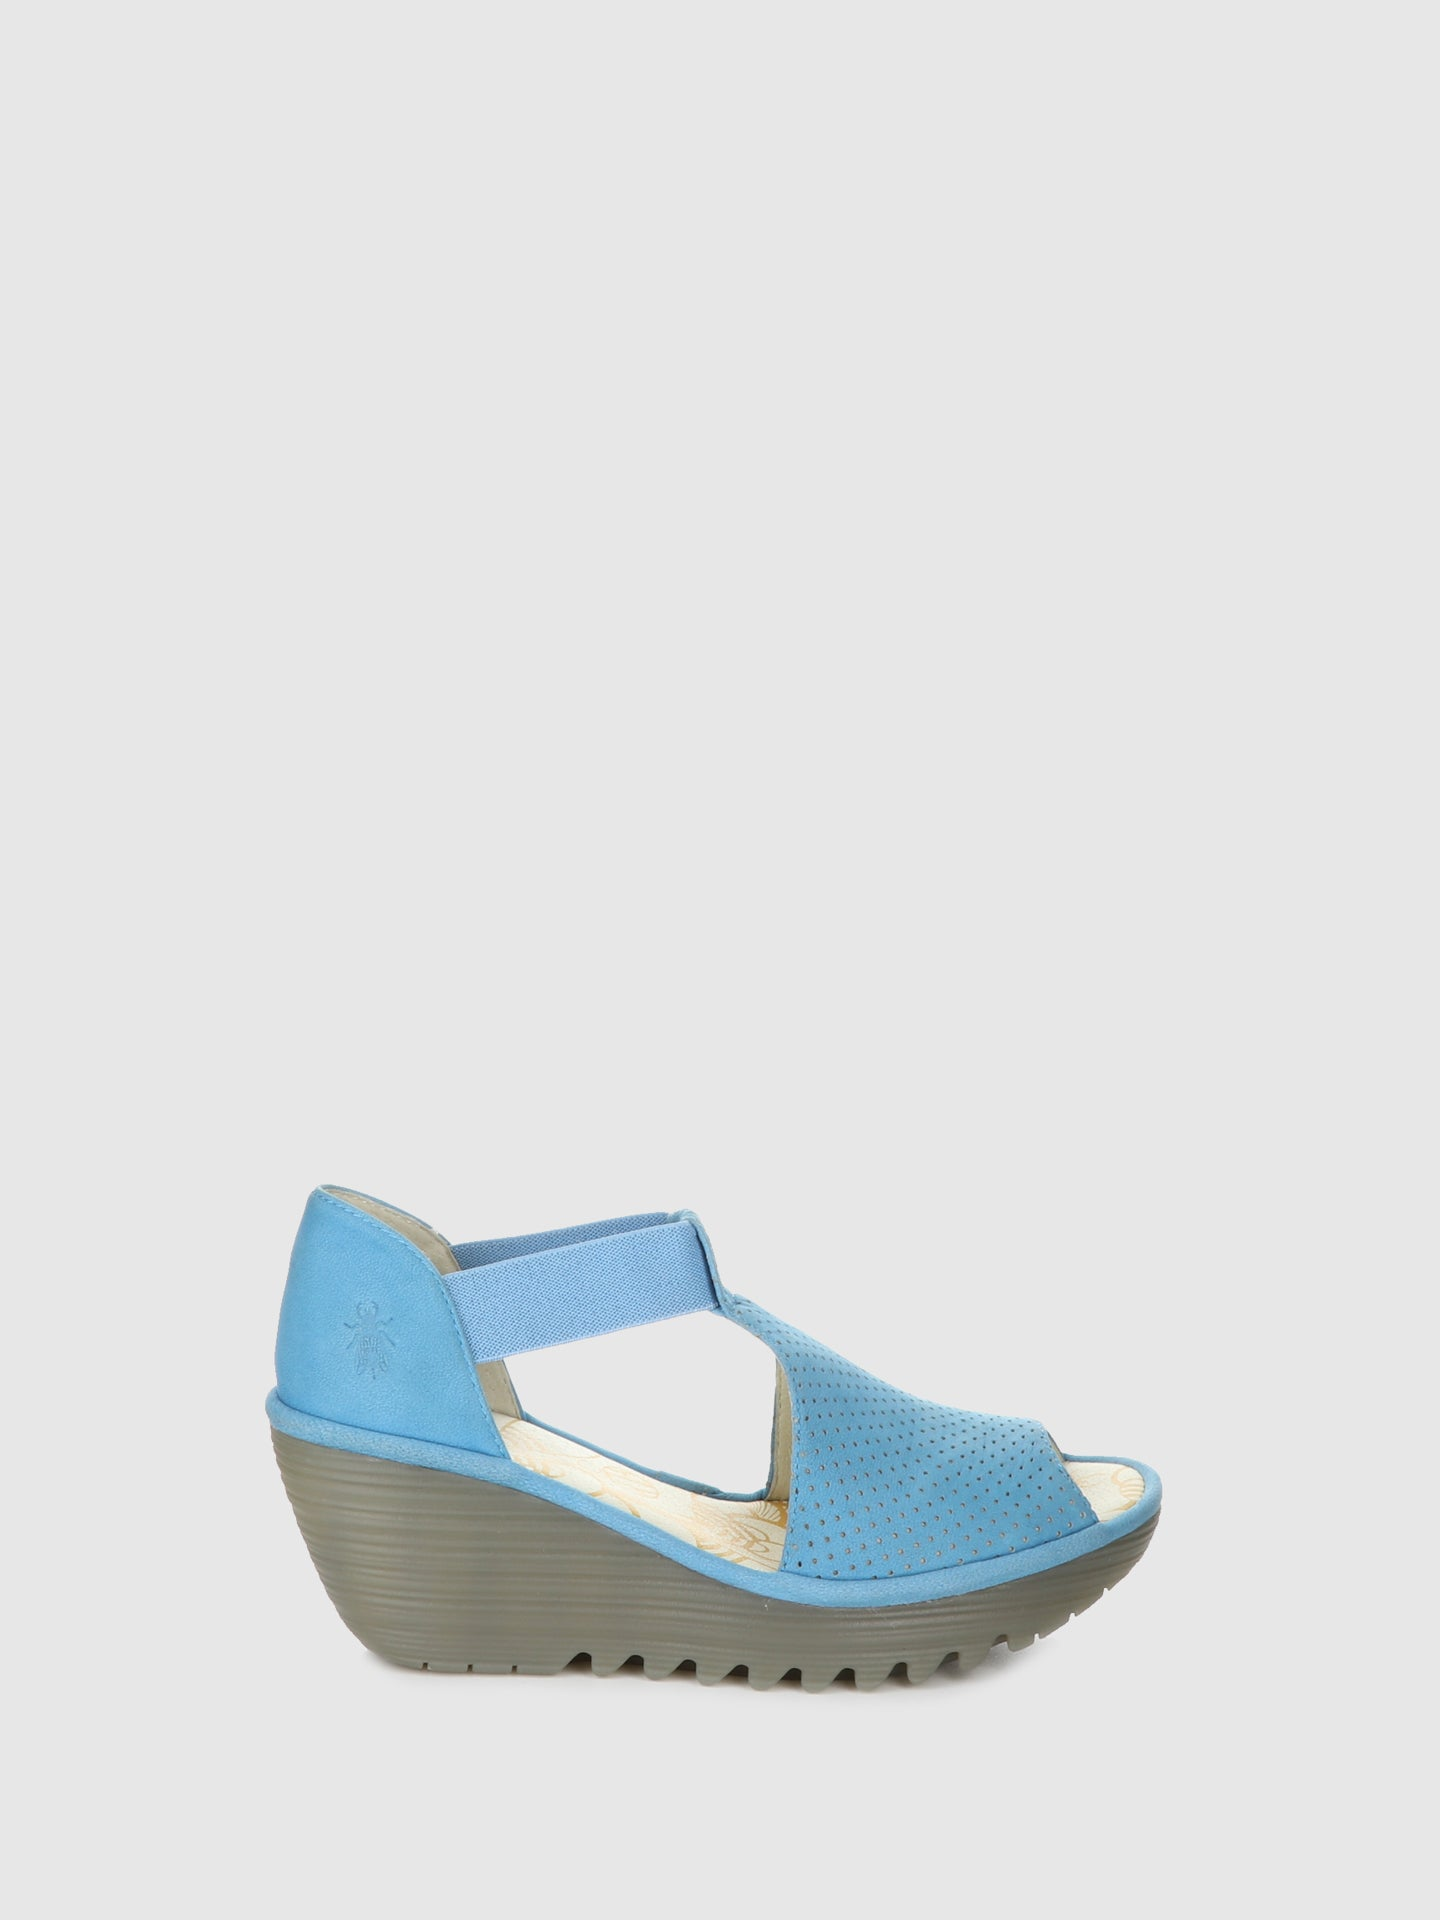 Fly London Blue Wedge Sandals